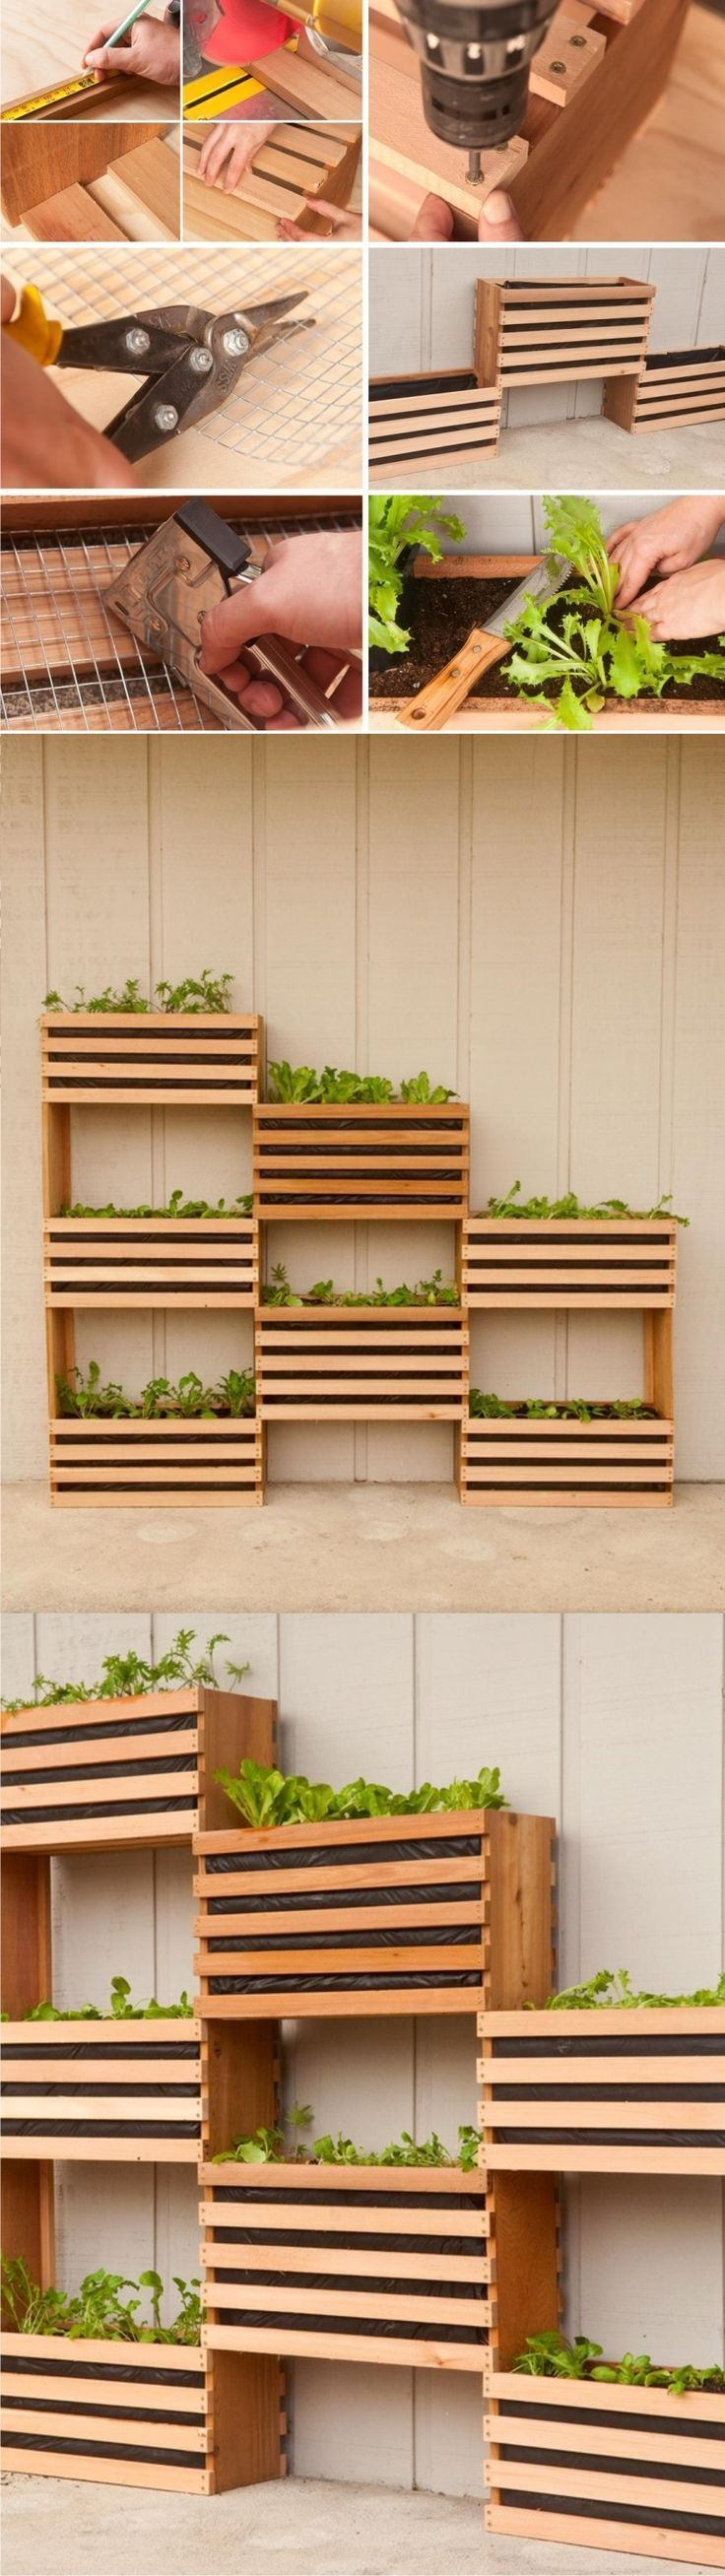 Perfect for folks with limited space, or who just prefer a stylish #garden bed for their deck, patio, or back yard, these vertical stacking planters are totally DIY-able.